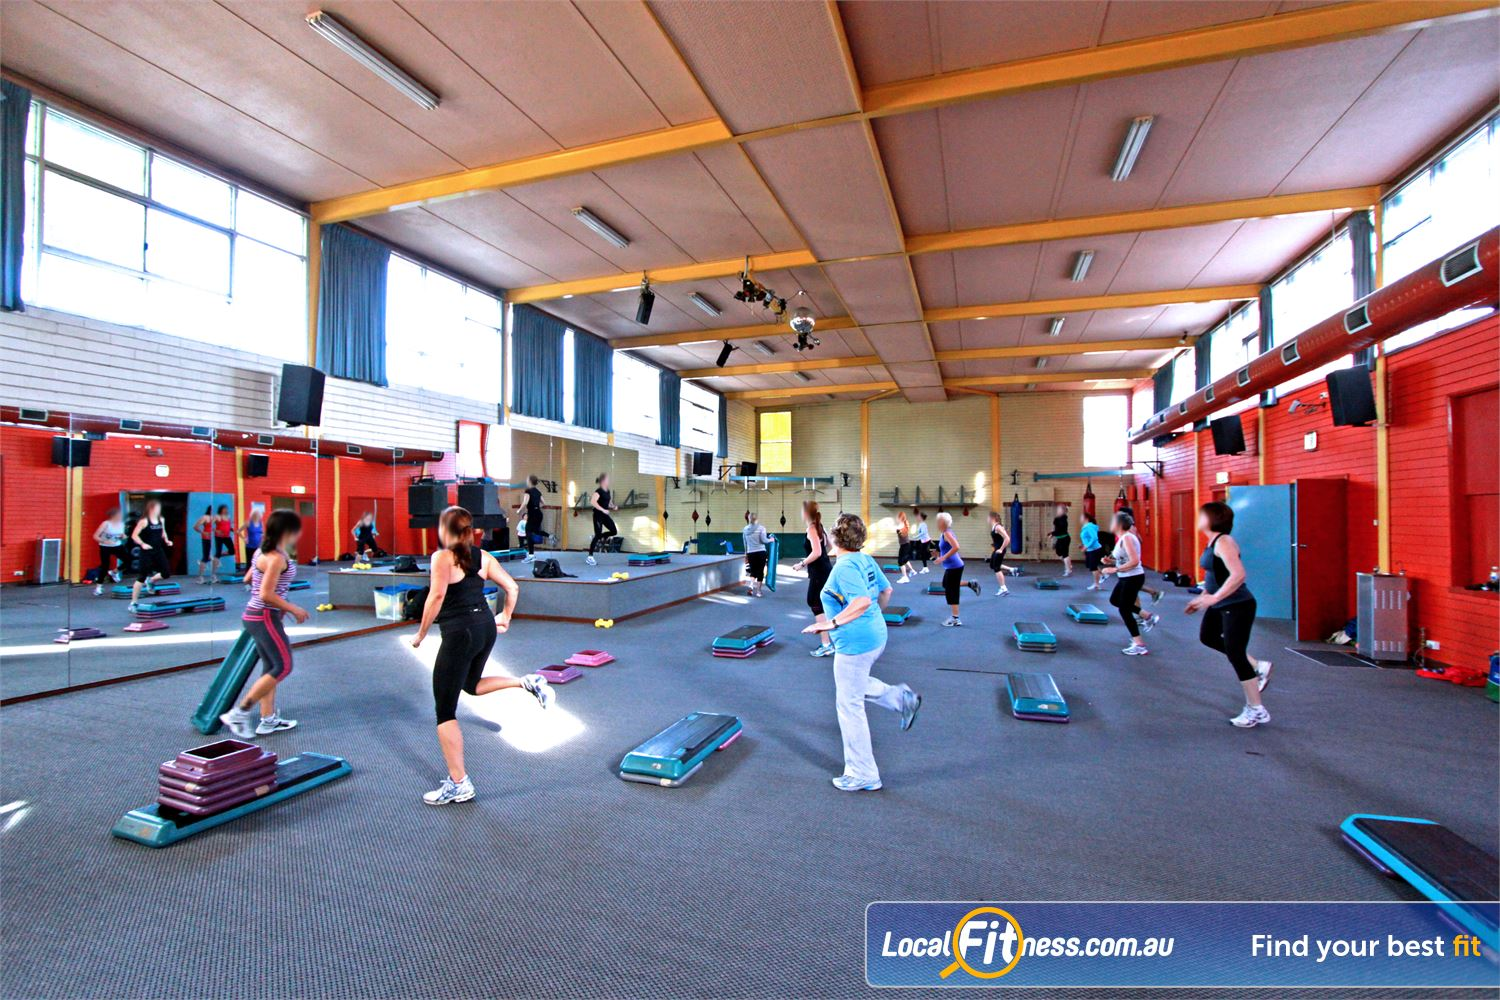 East Keilor Leisure Centre Keilor East The spacious and dedicated East Keilor group fitness studio.